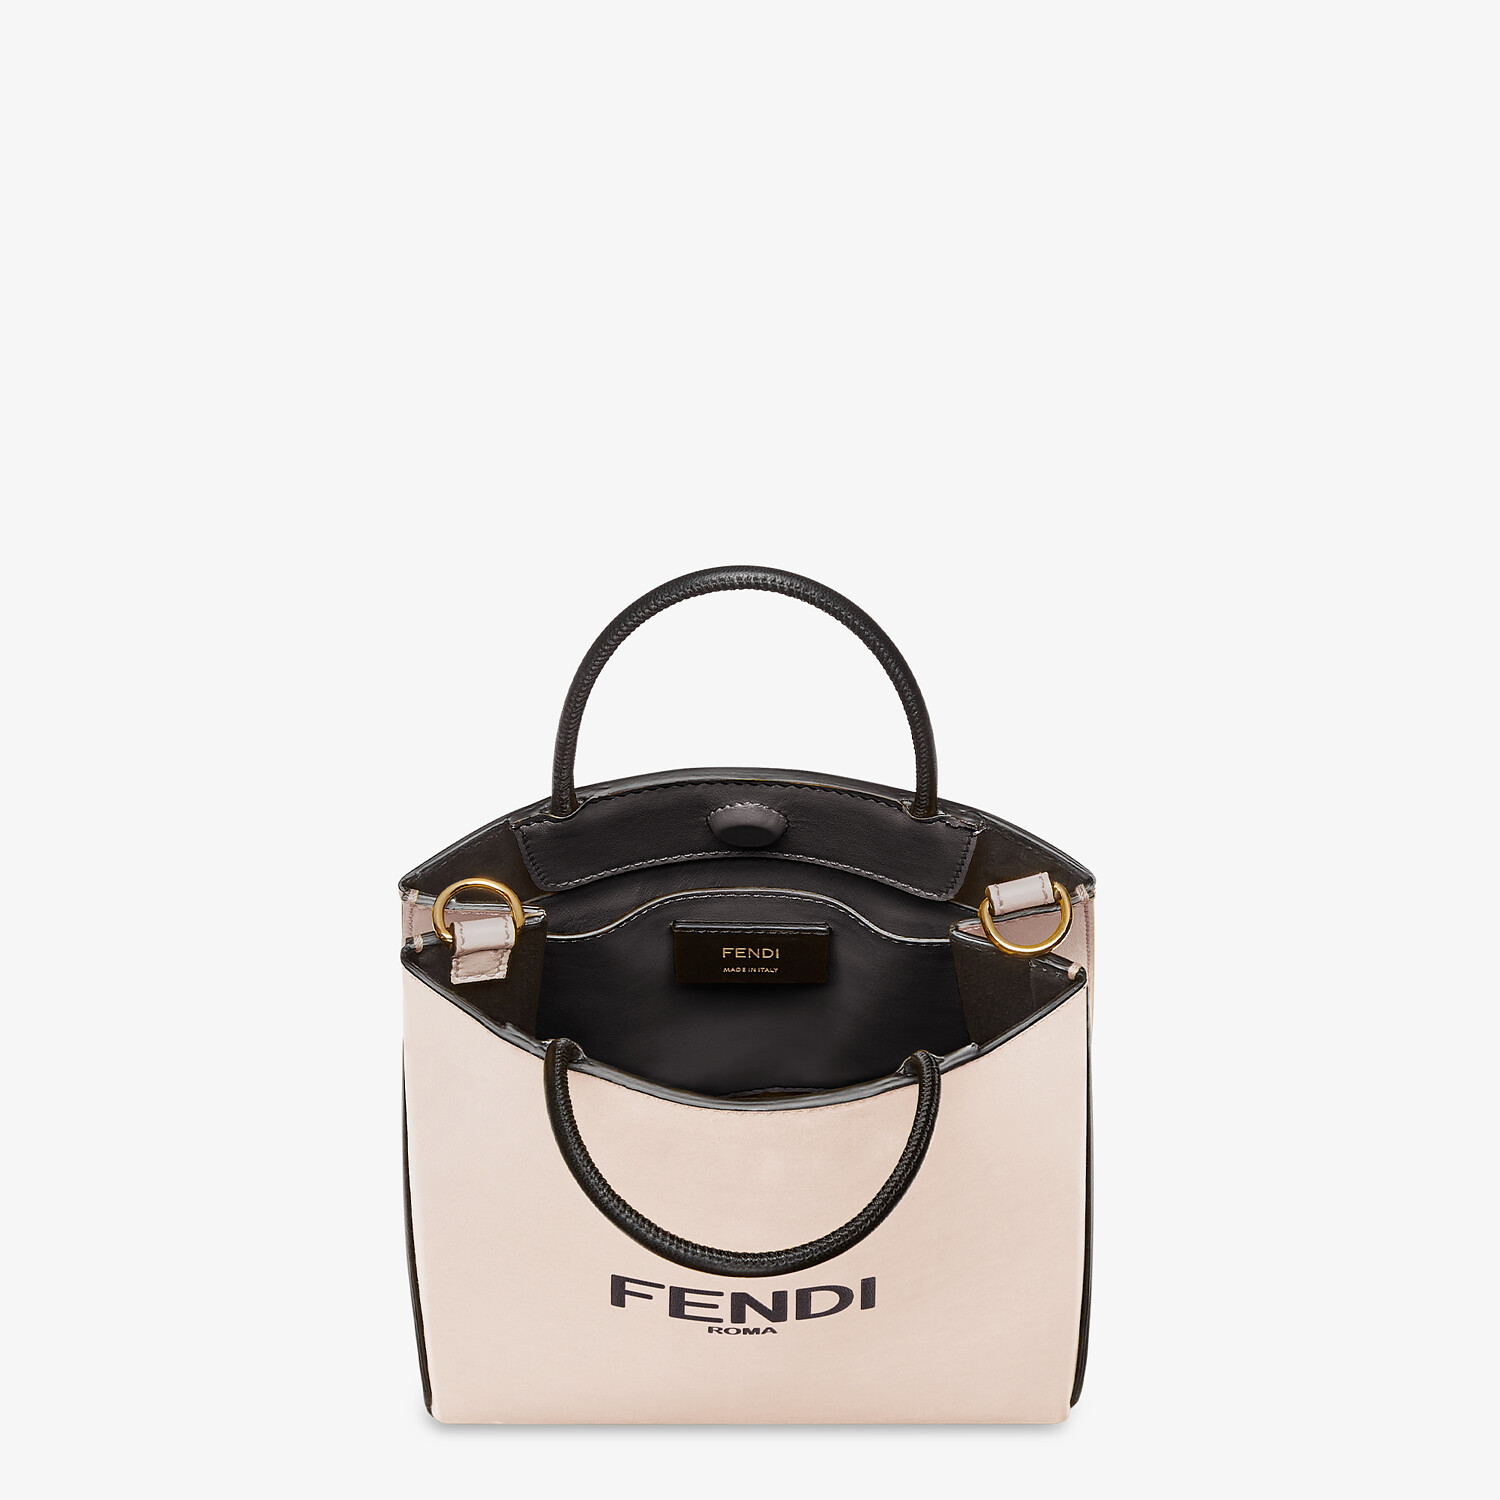 FENDI FENDI PACK SMALL SHOPPING BAG - Pink leather bag - view 5 detail